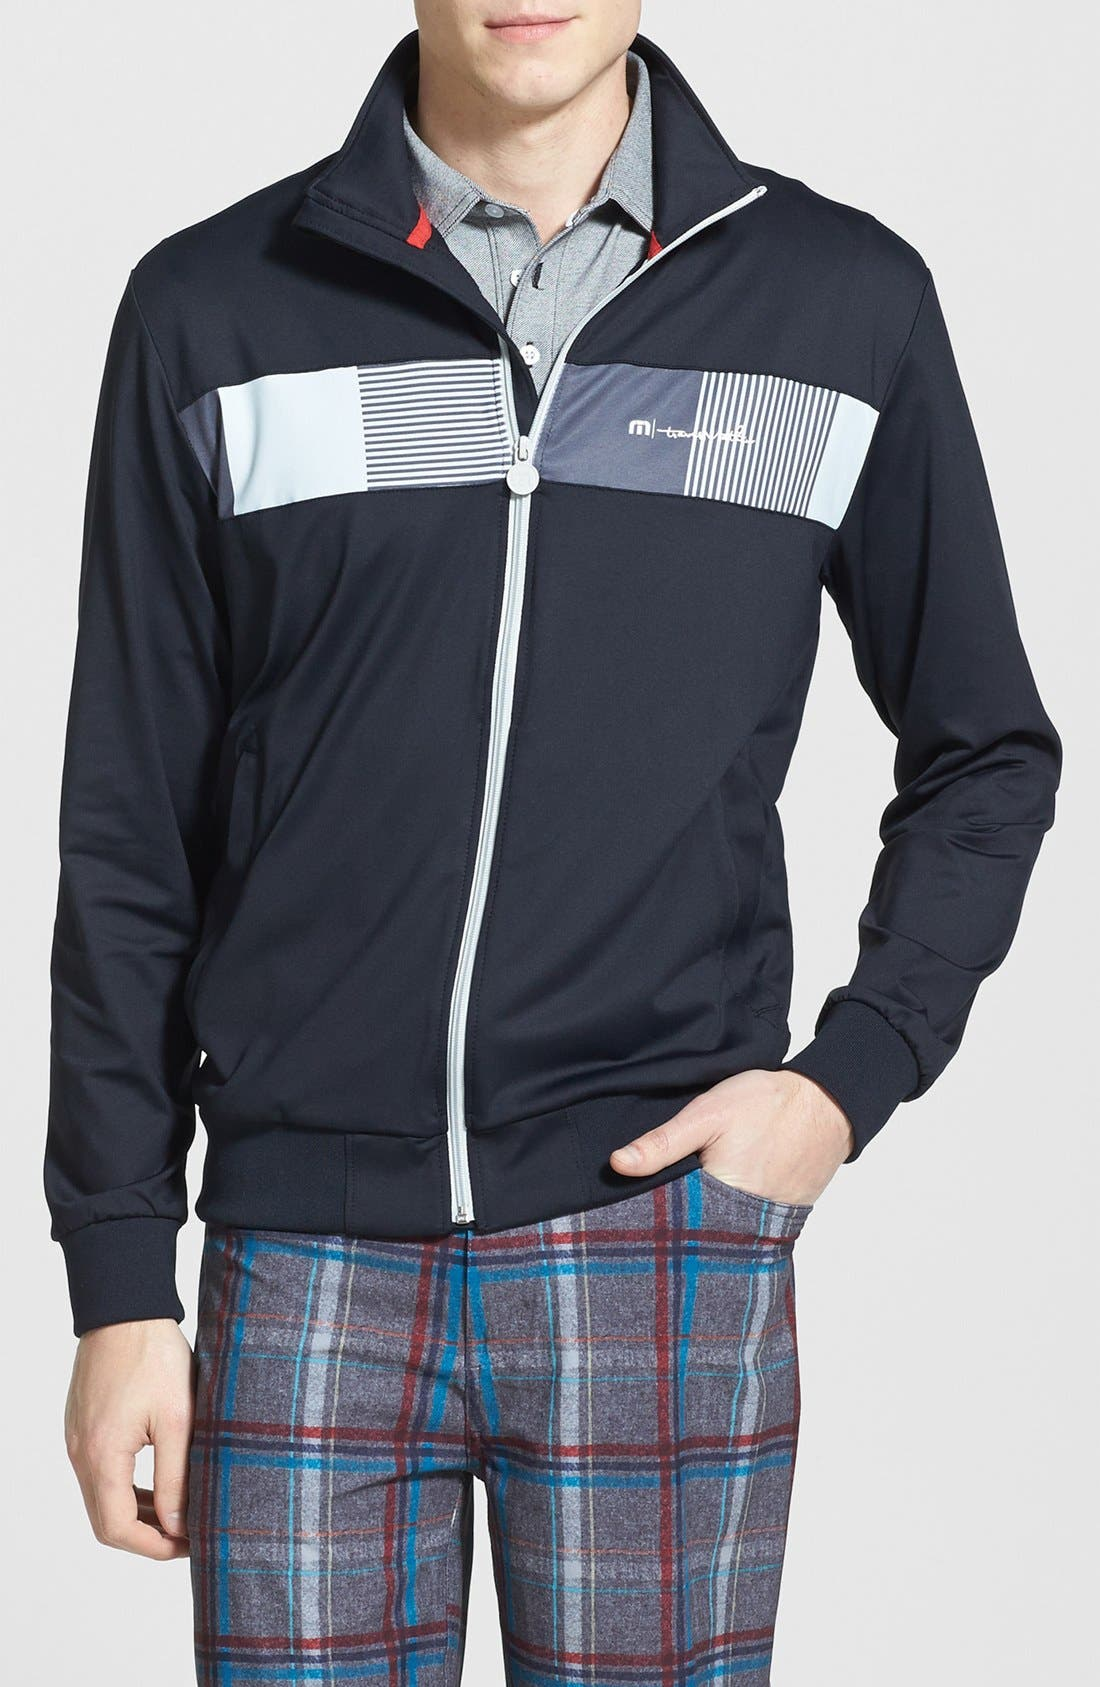 Alternate Image 1 Selected - Travis Mathew 'Fiction' Trim Fit Full Zip Track Jacket